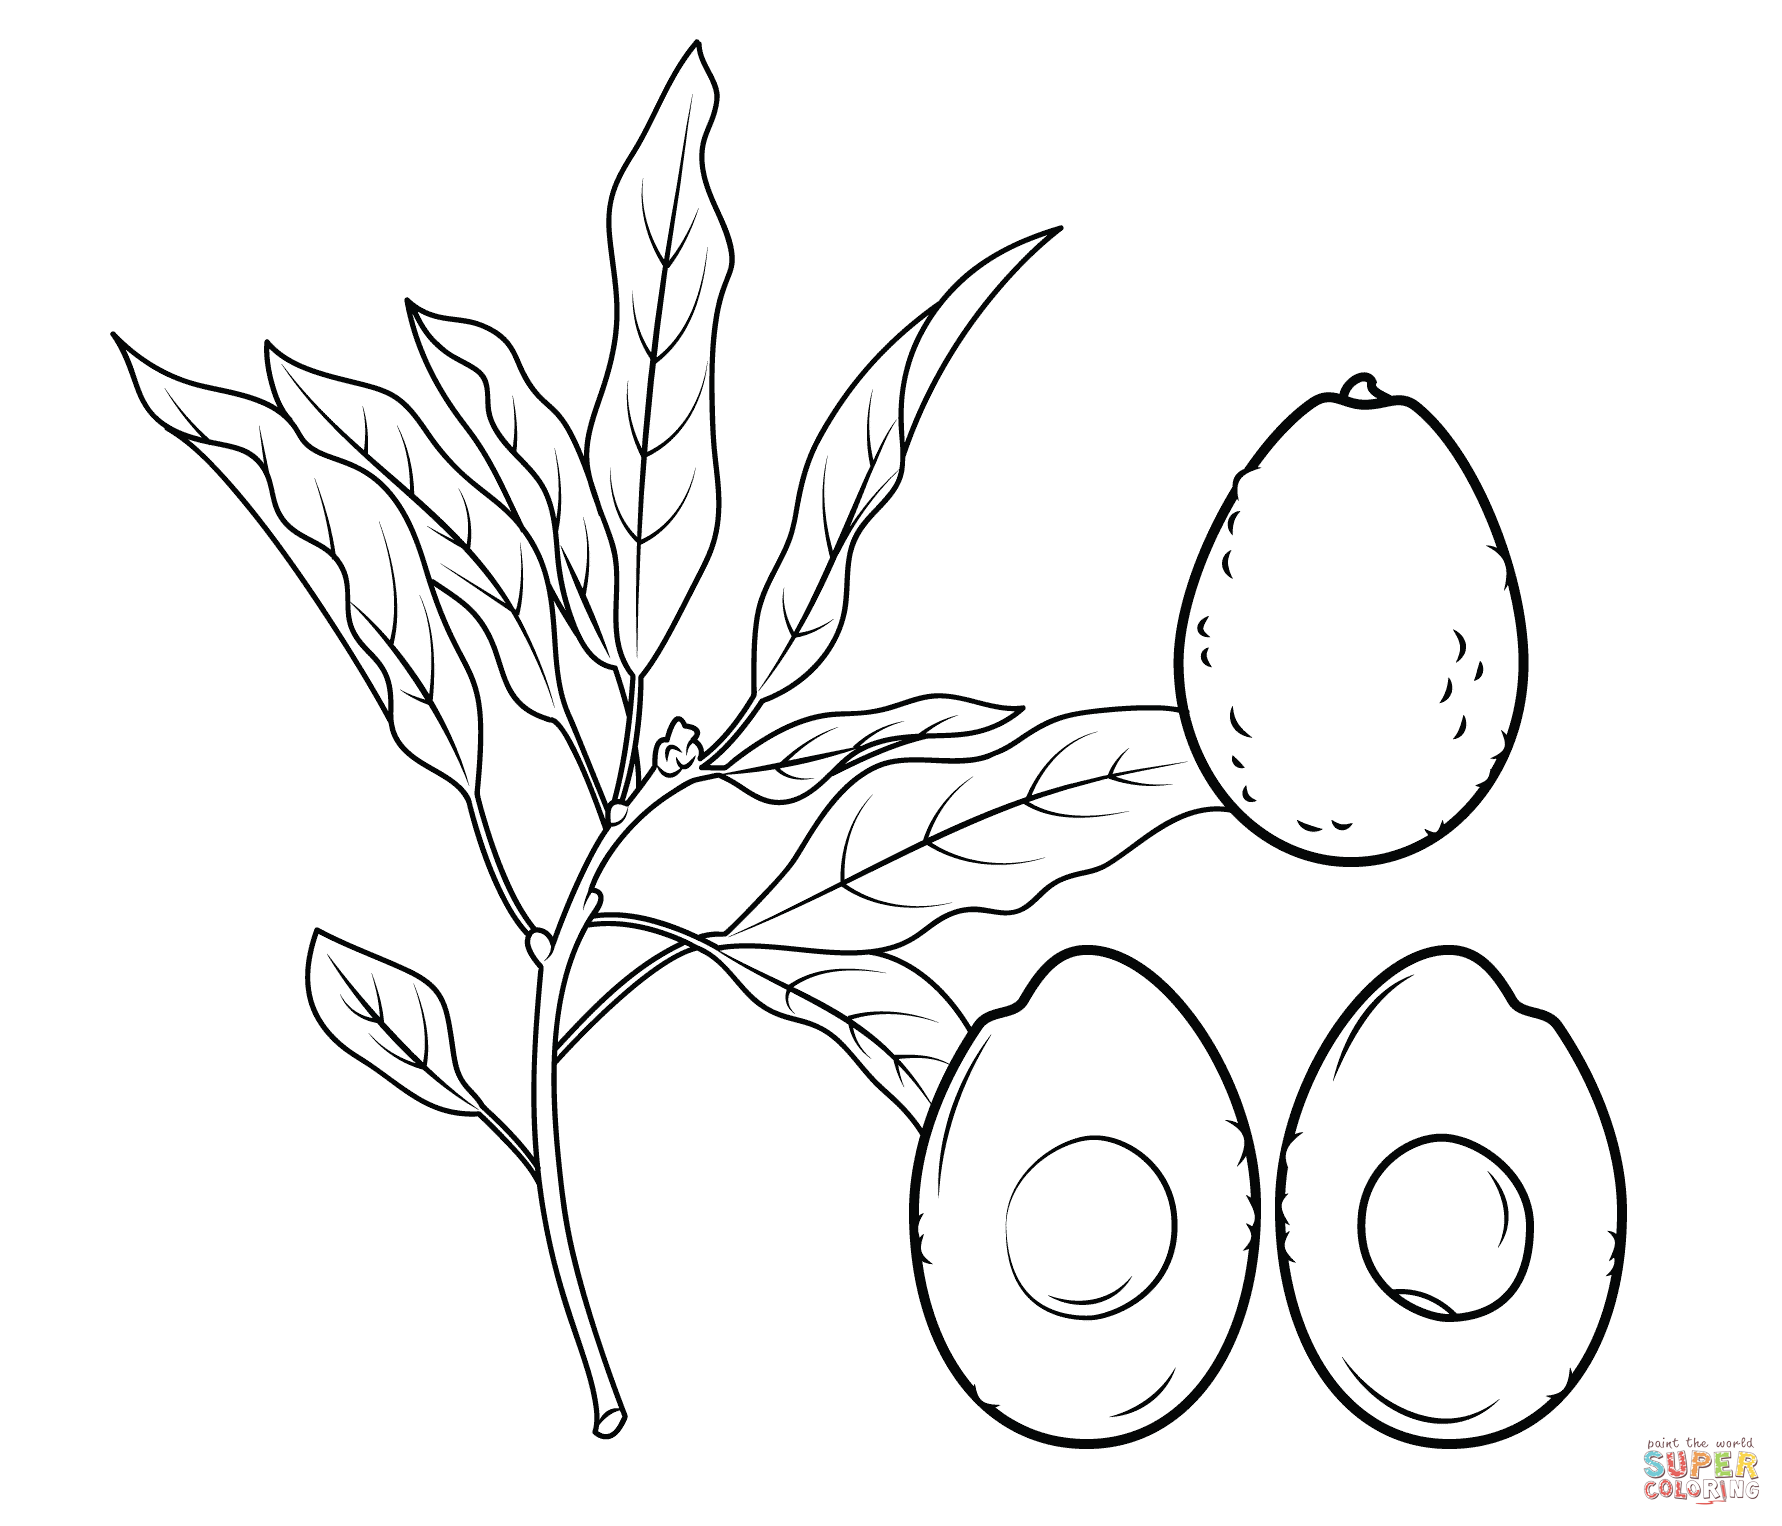 Avocado clipart coloring Free branch pages Avocado cross